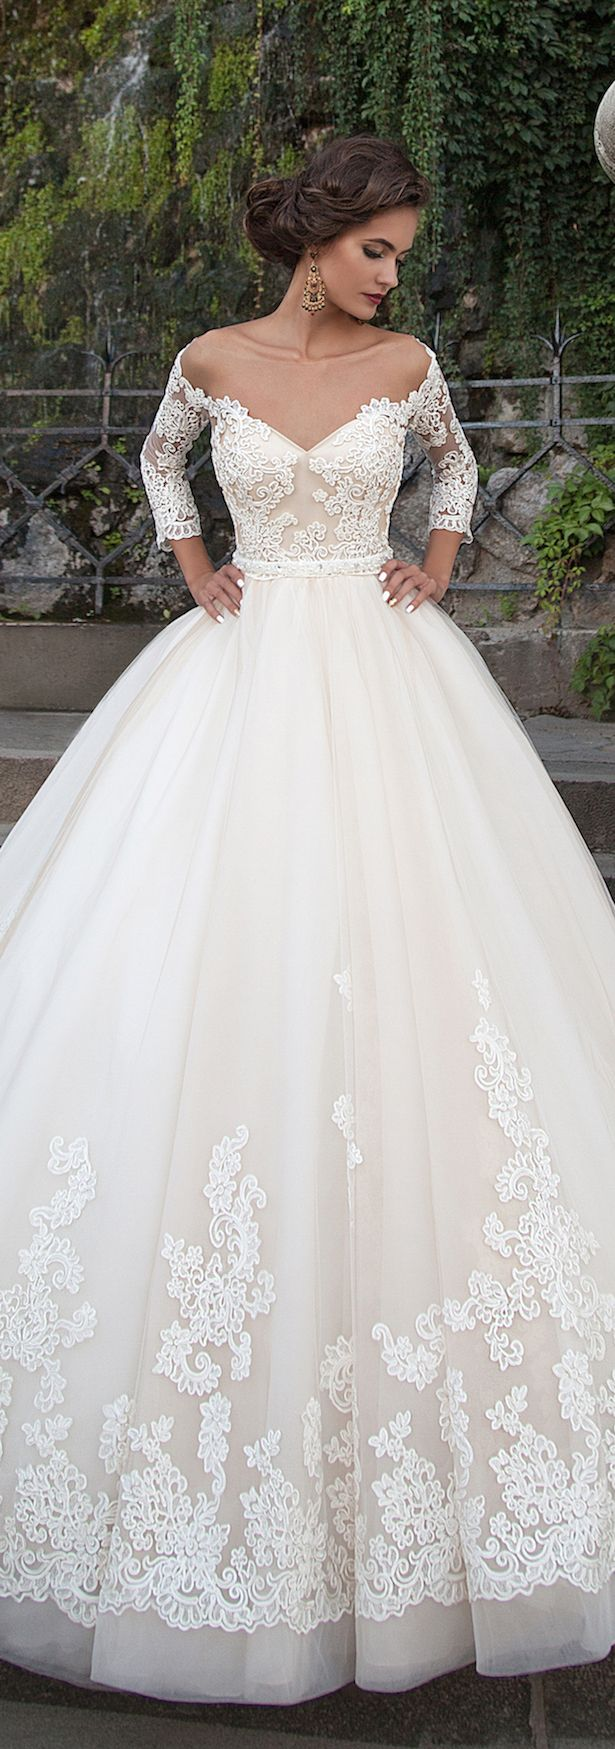 Milla nova 2016 bridal collection bridal collection met and milla nova 2016 bridal collection princess style wedding dressesstunning ombrellifo Image collections